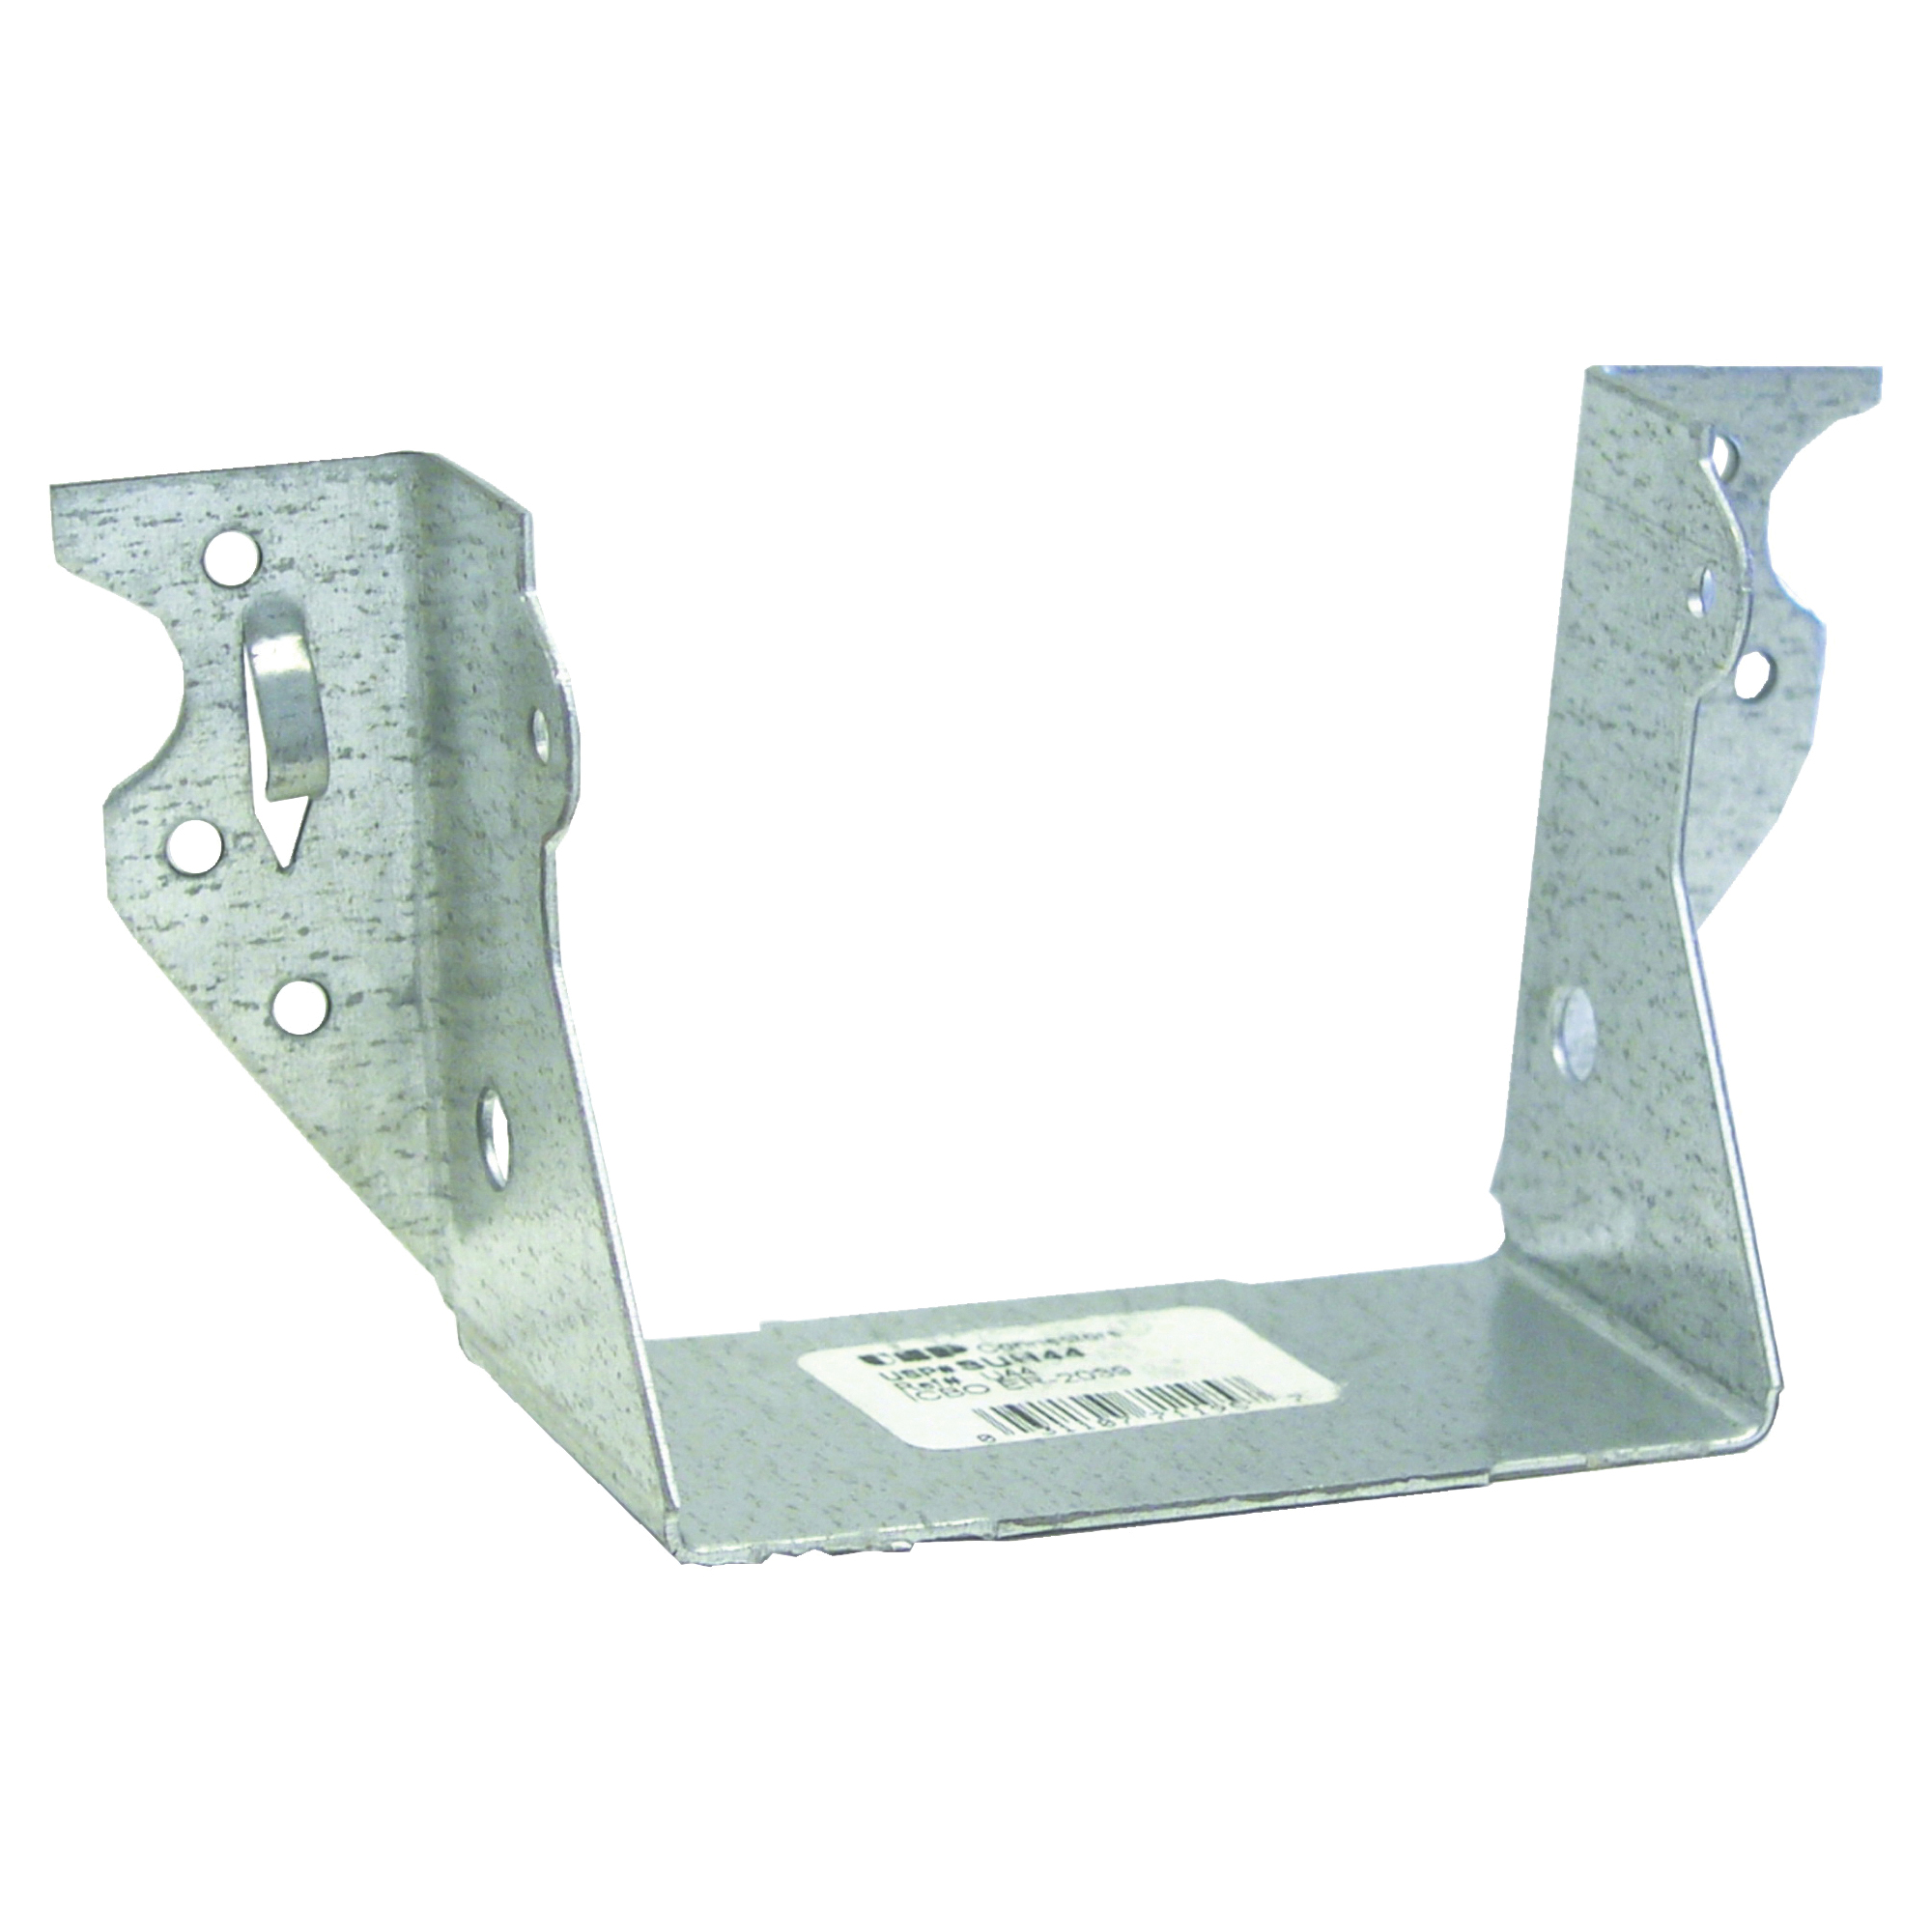 Picture of MiTek SUH44 Joist Hanger, 2-7/8 in H, 2 in D, 3-9/16 in W, 4 in x 4 in, Steel, G90 Galvanized, Face Mounting